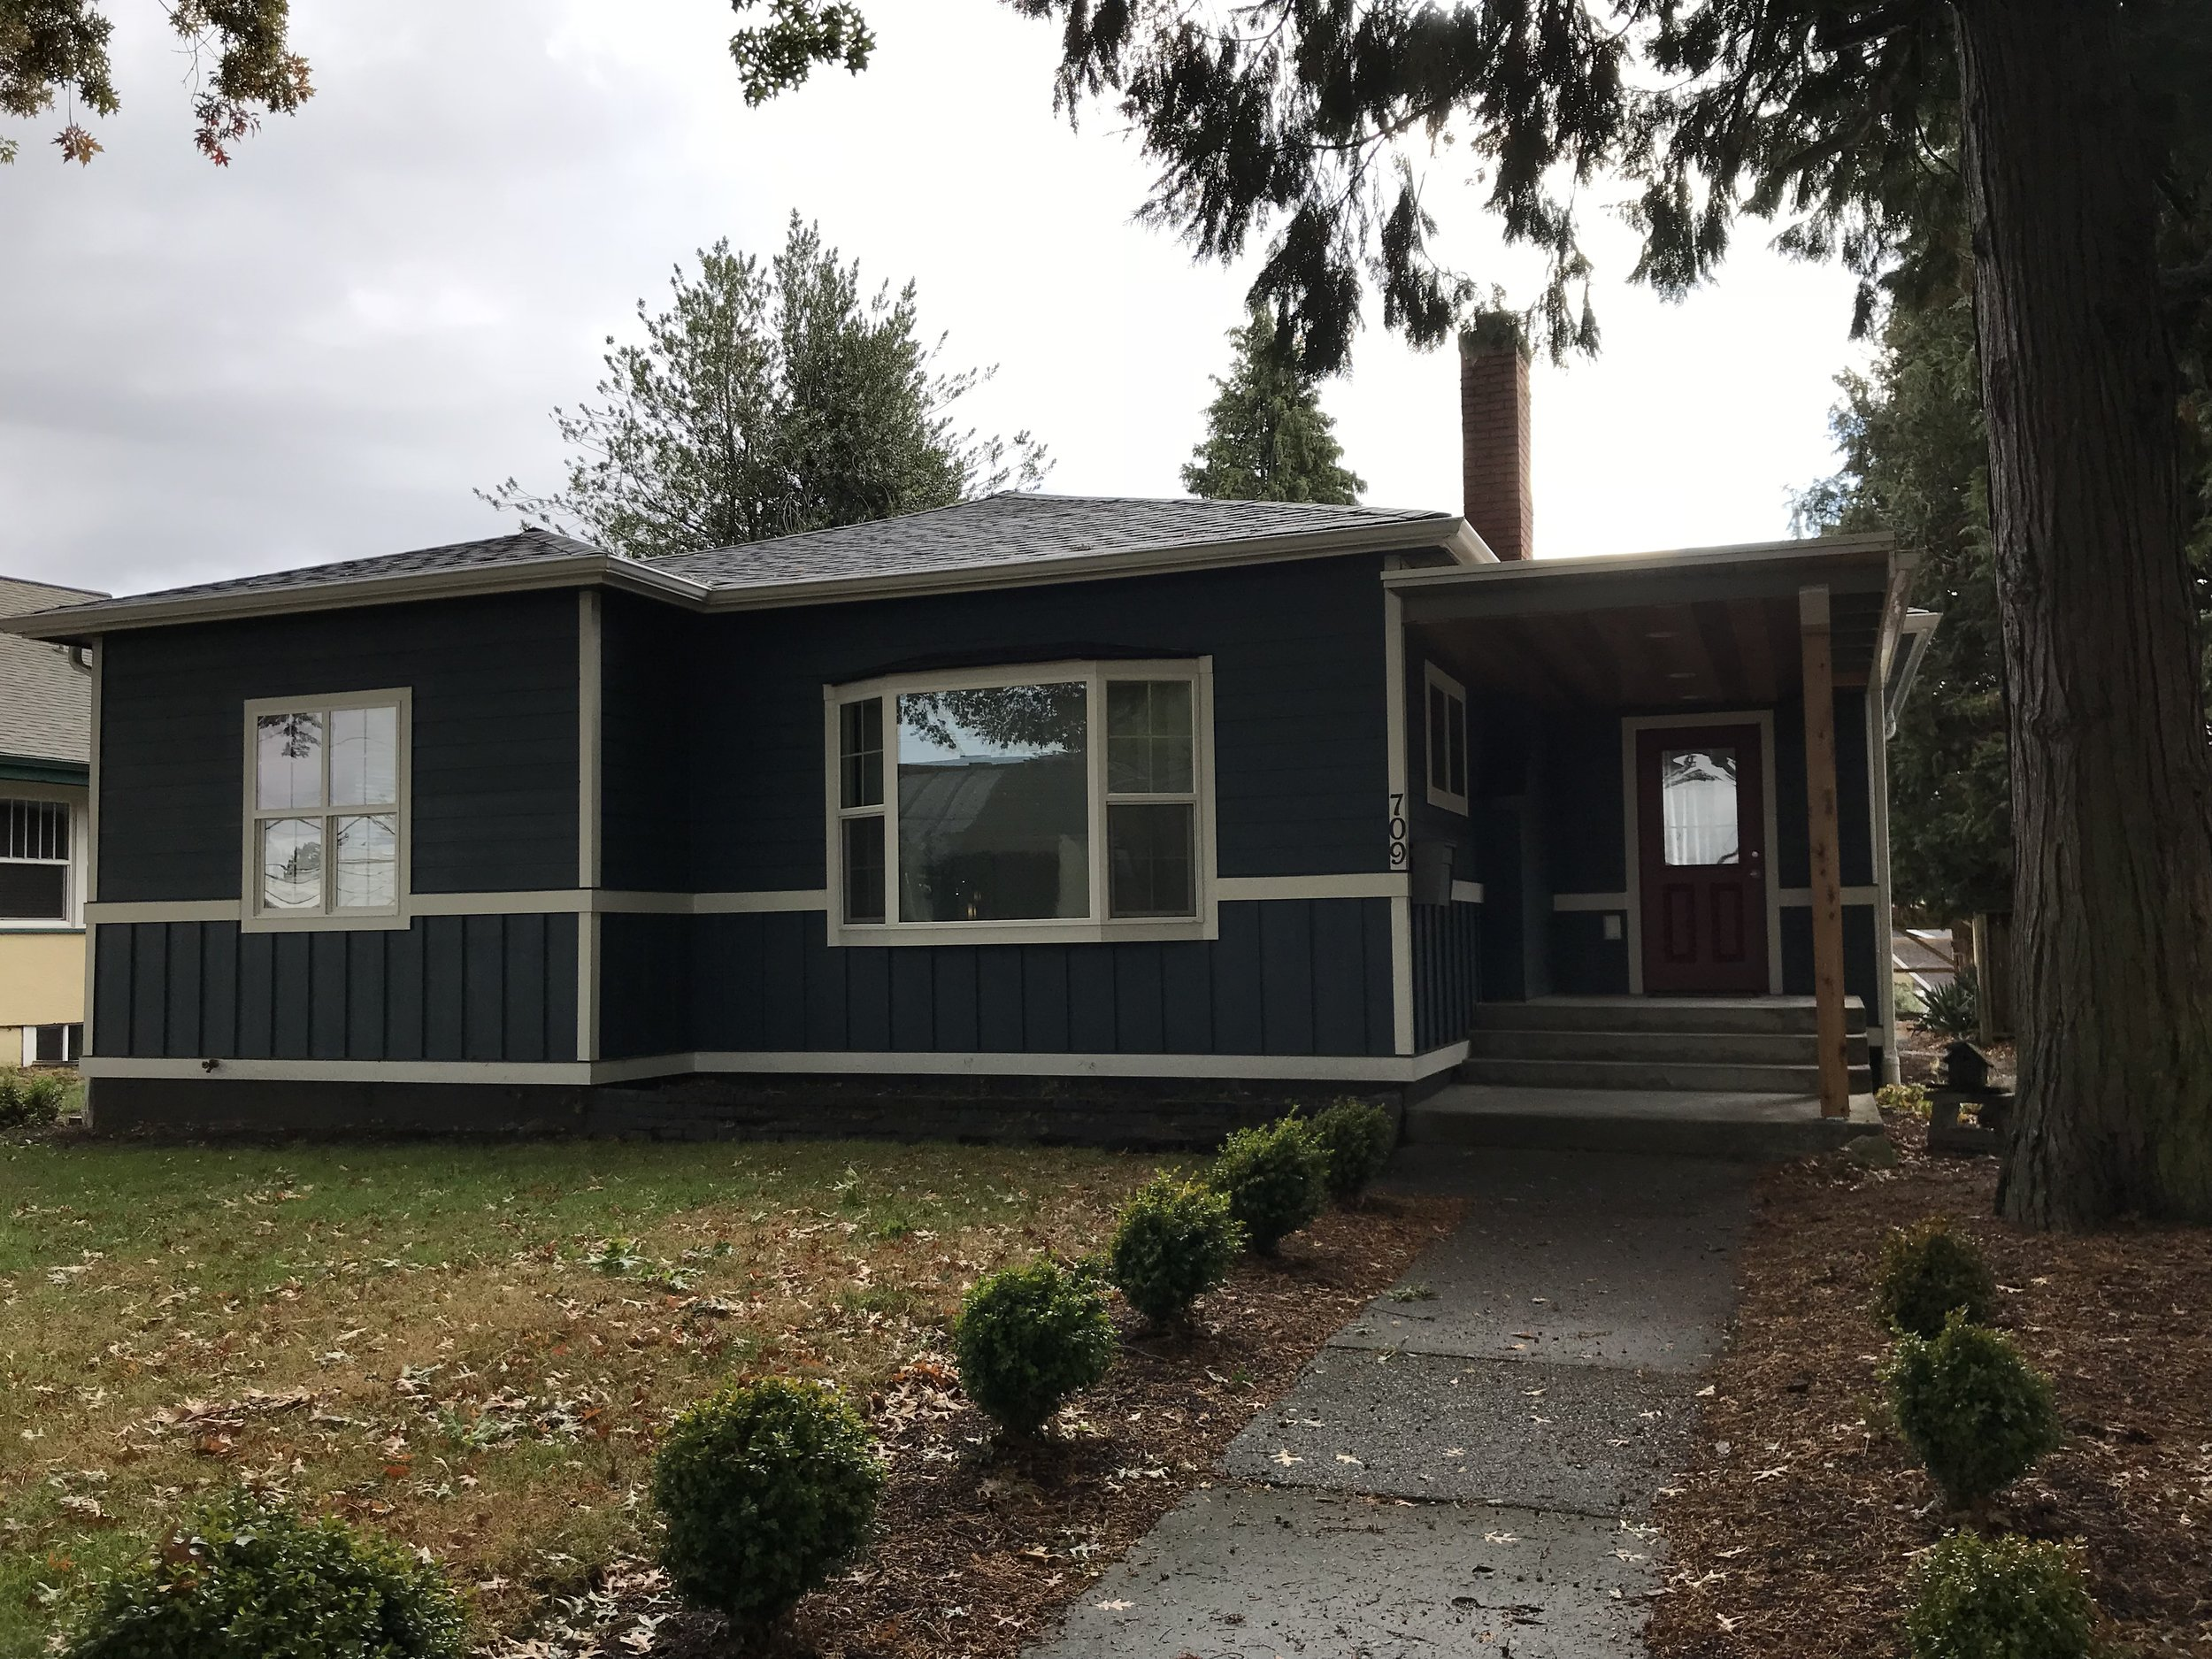 Where can I find you? - Nestled near the heart of downtown Lynden, WA….